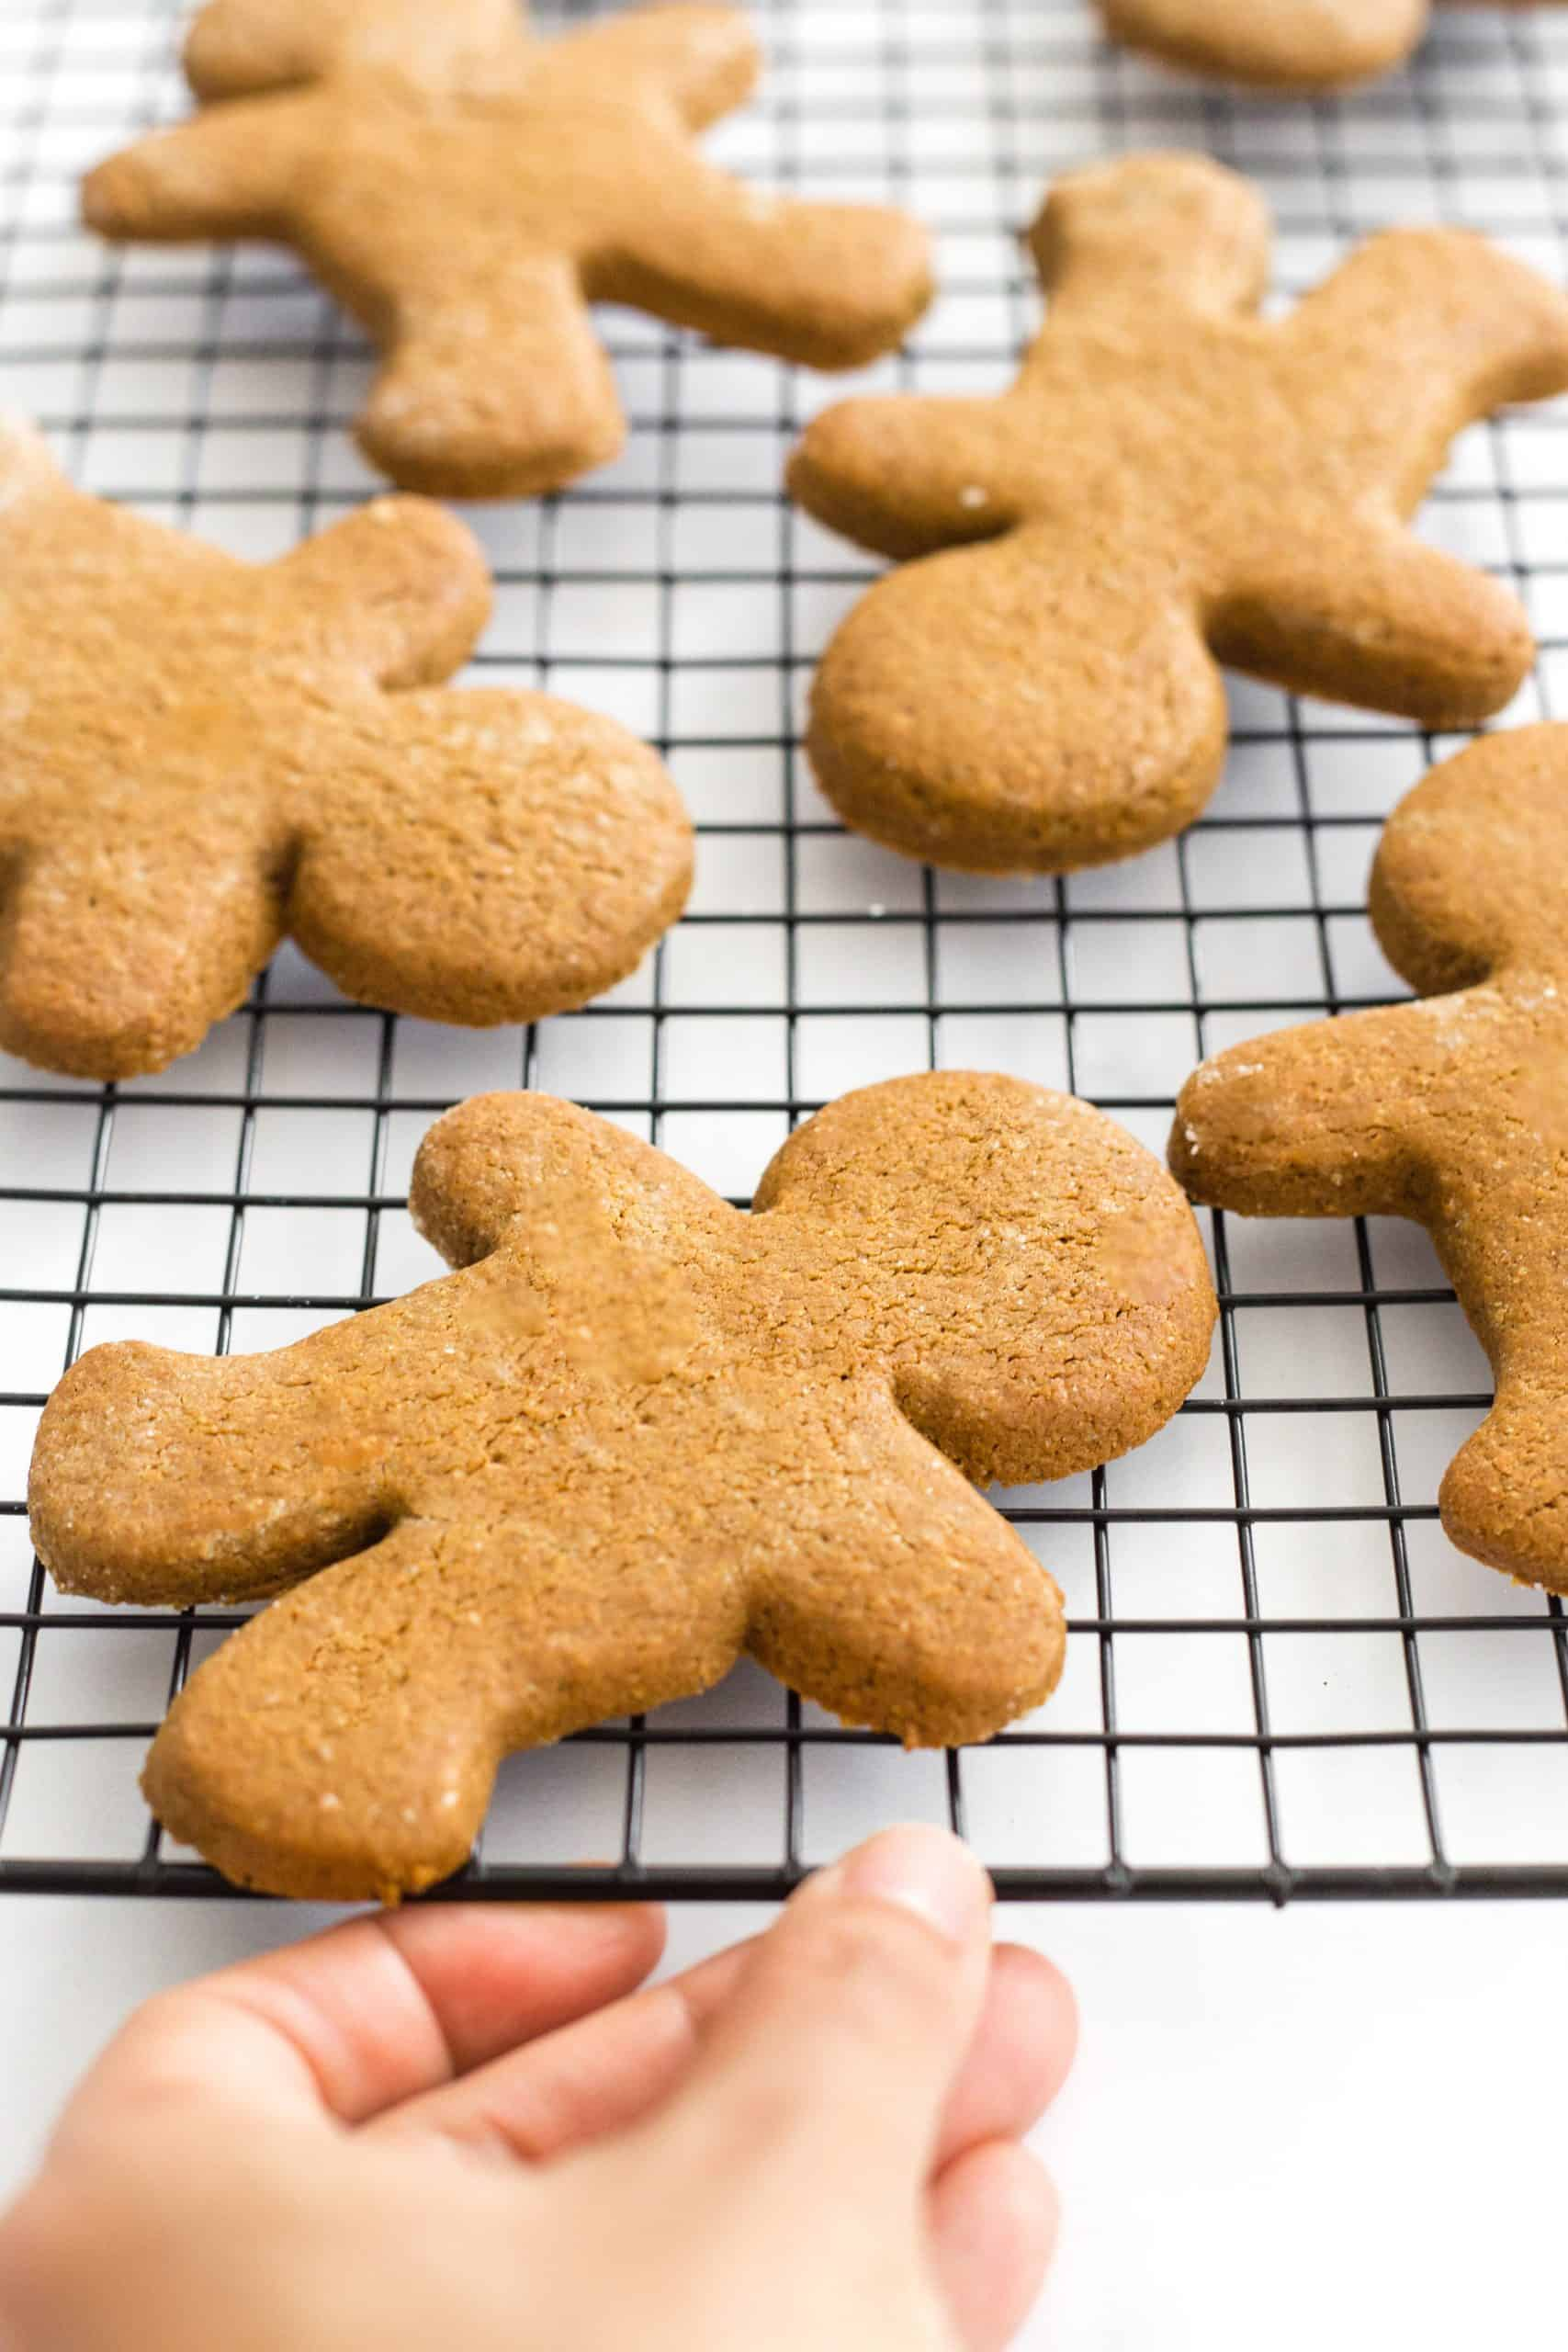 Hand holding a rack of gingerbread cookies.